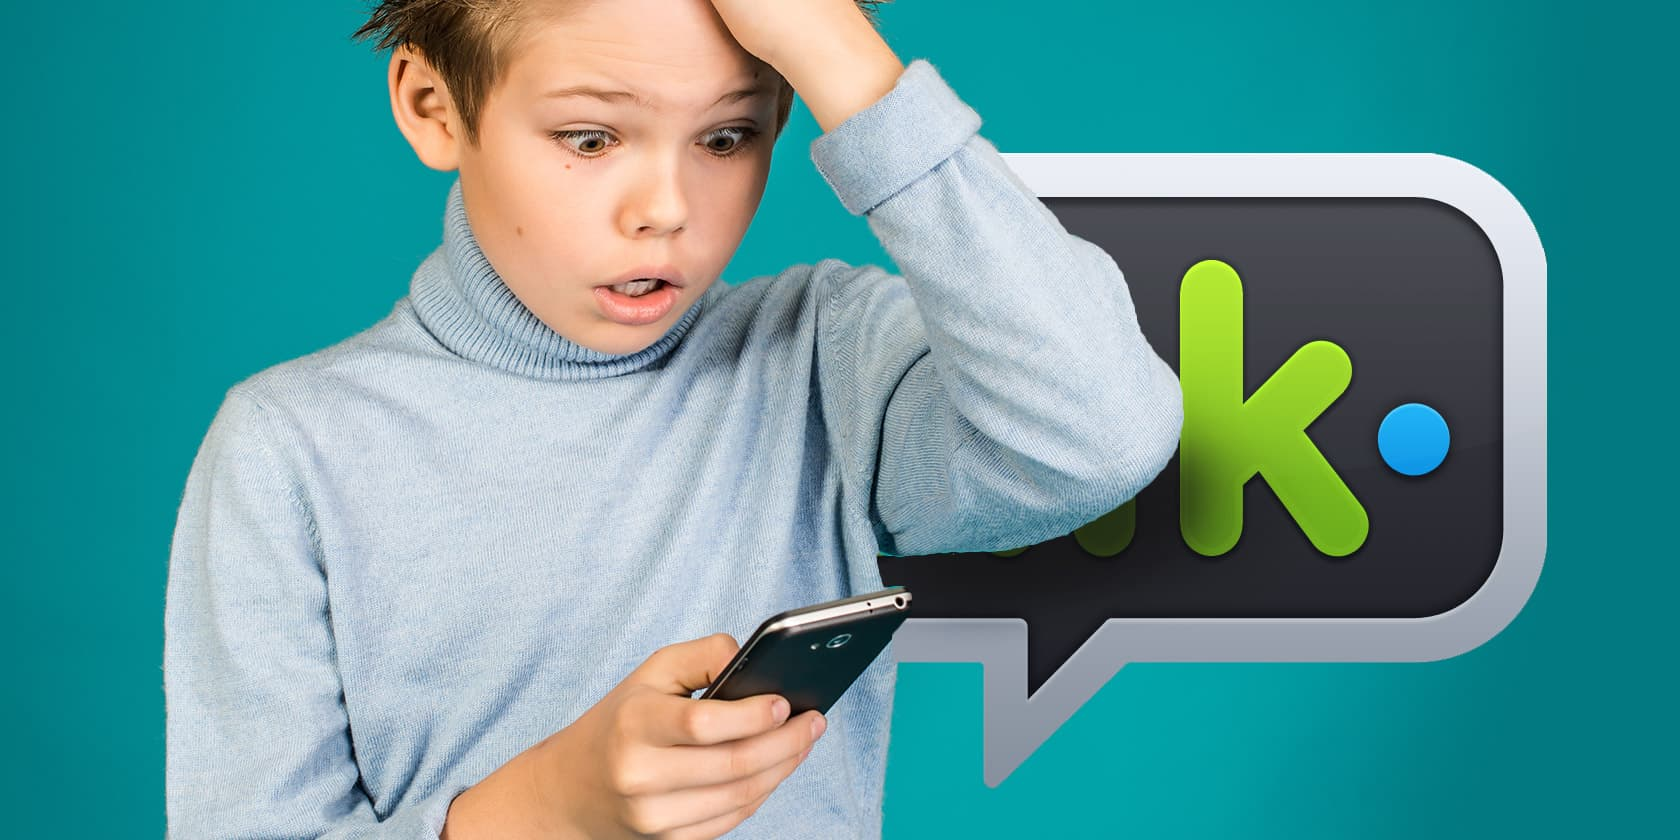 KIk Not Working - Learn Here How To Fix the KIK Login Errors